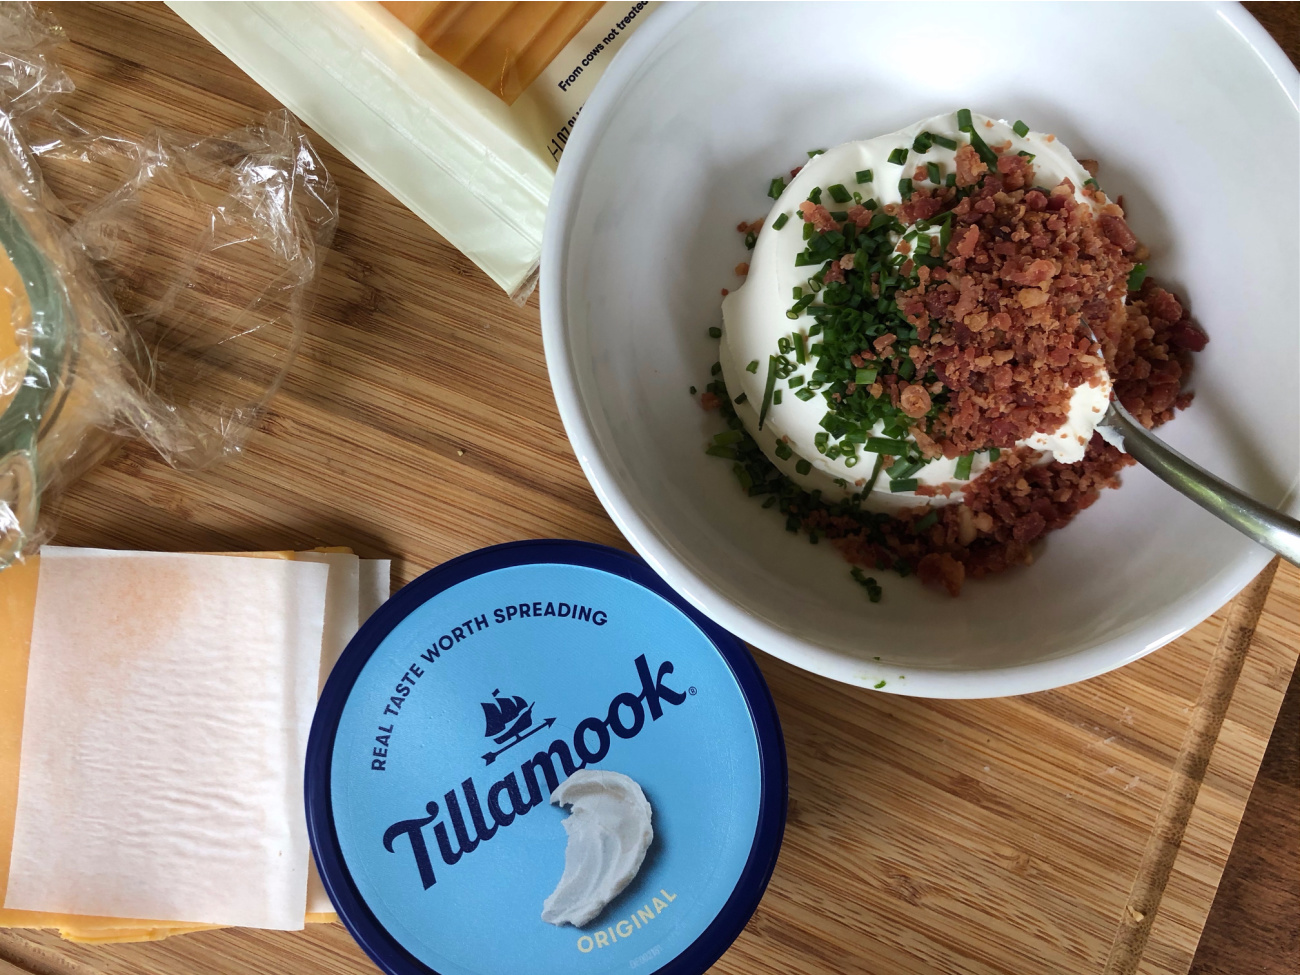 Summer Entertaining Made Easy With Tillamook - Save Now At Publix on I Heart Publix 1